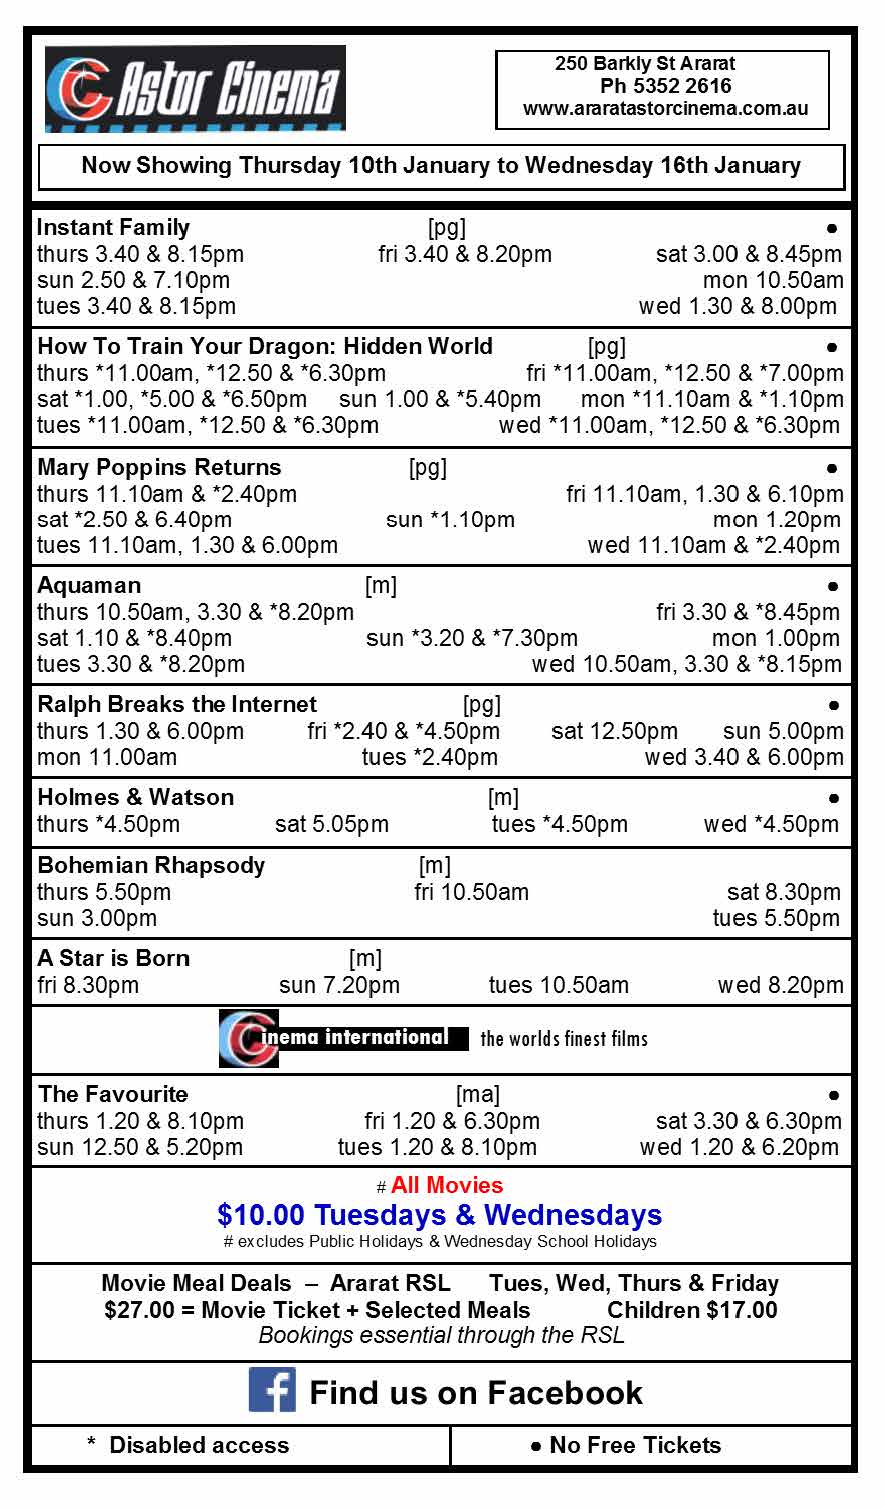 Astor Cinema screening times - 10-16 January